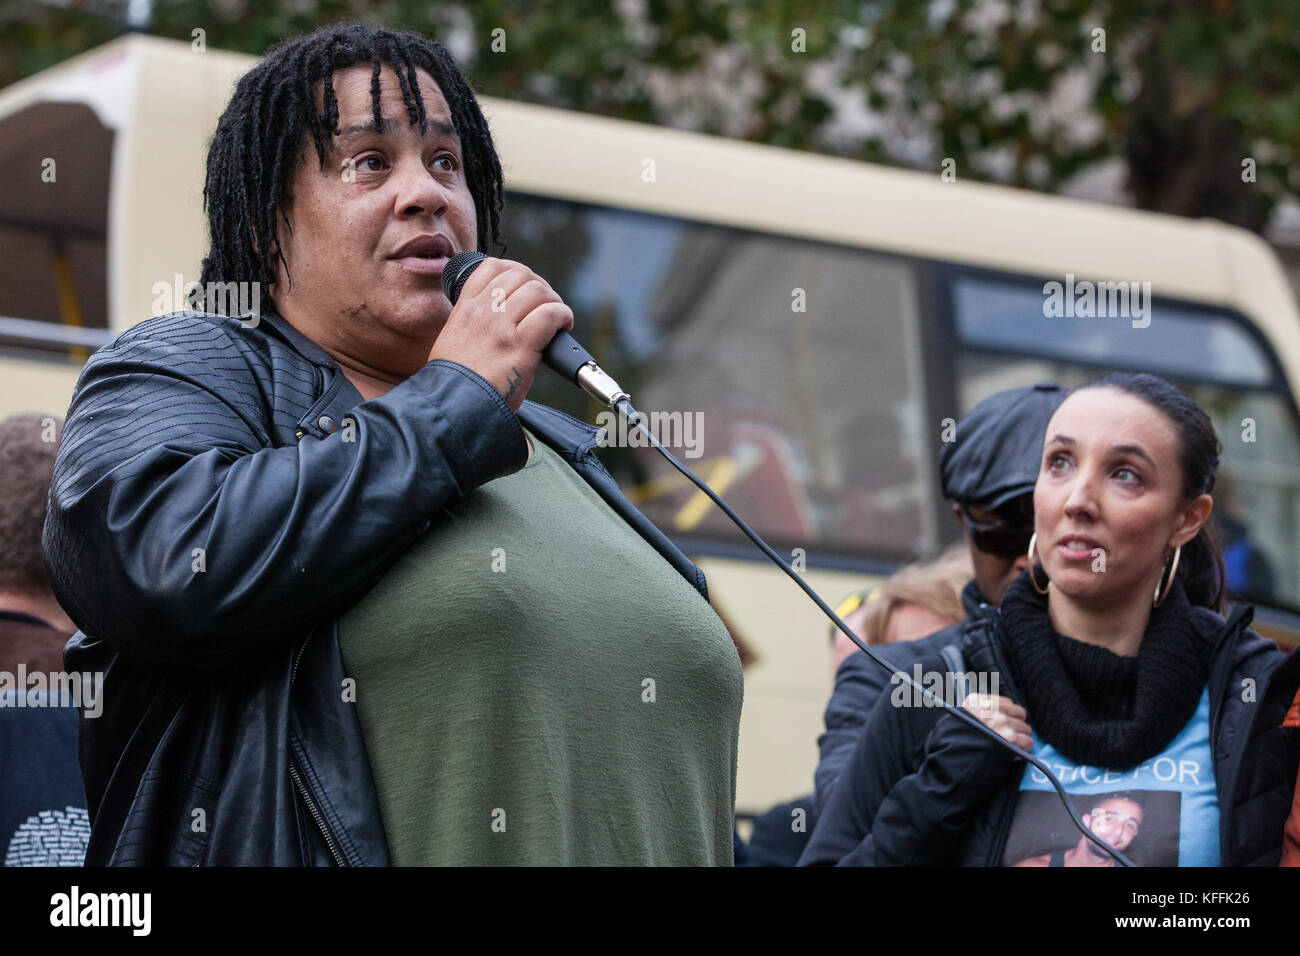 London, UK. 28th October, 2017. Karla Mohammed, mother of Mzee Mohammed, addresses campaigners from the United Families - Stock Image